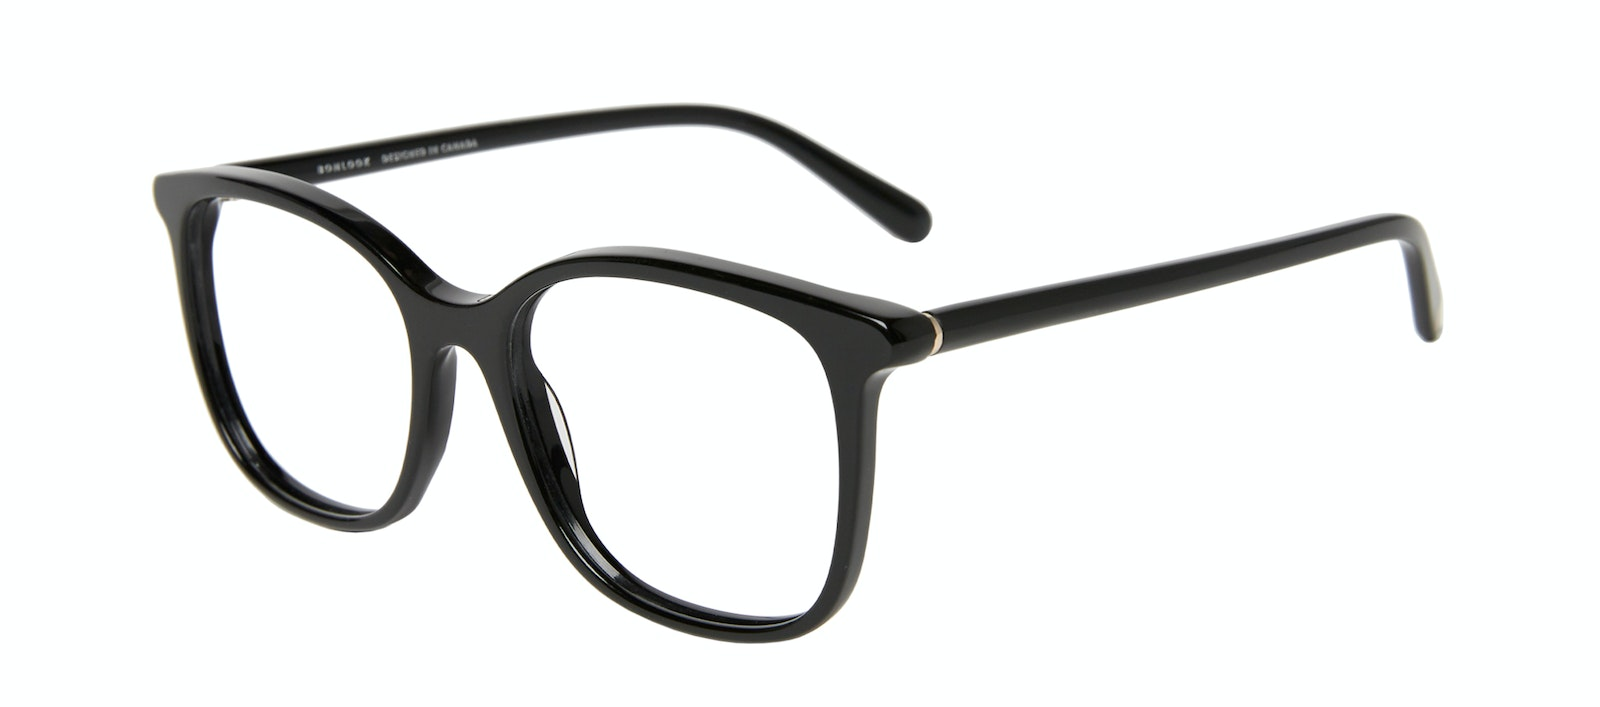 Affordable Fashion Glasses Square Eyeglasses Women Luna Onyx Tilt